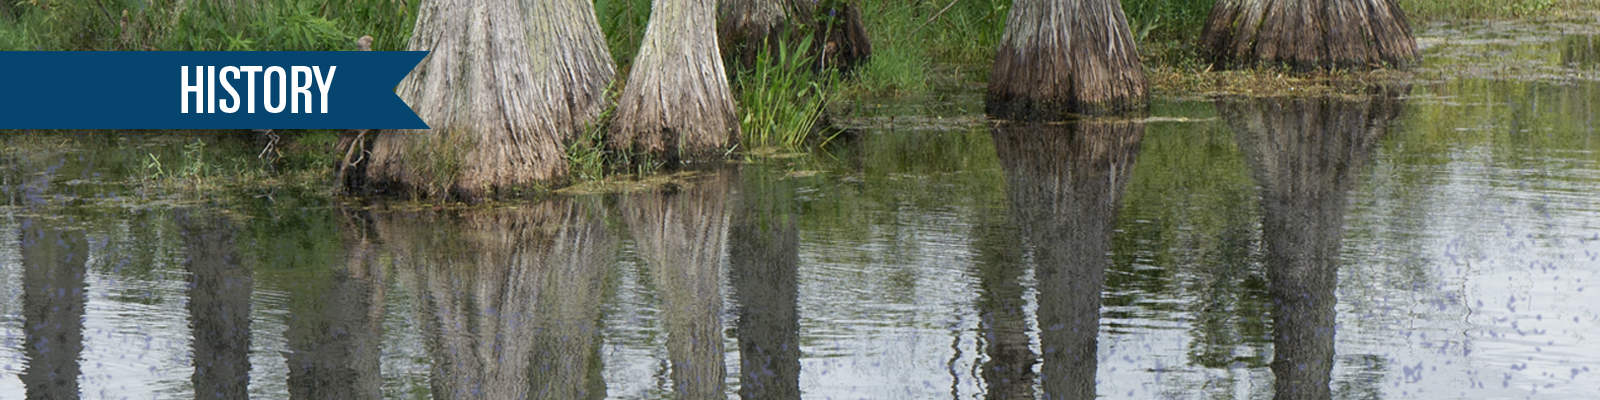 Okefenokee swamp with History written on it